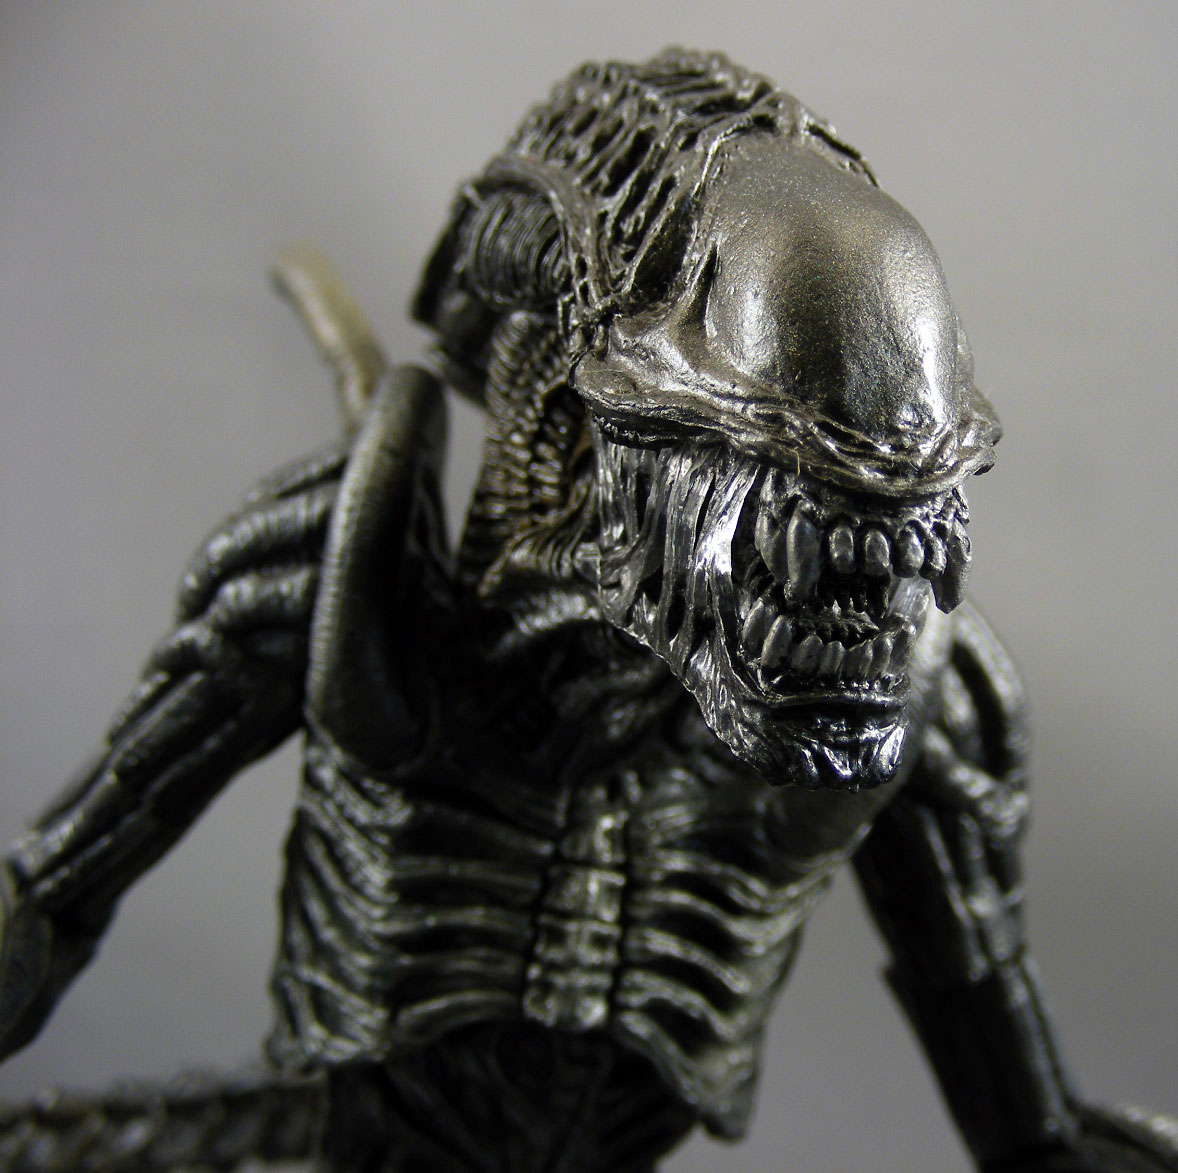 """With me here my favorite """"alien"""" design is the one from aliens"""